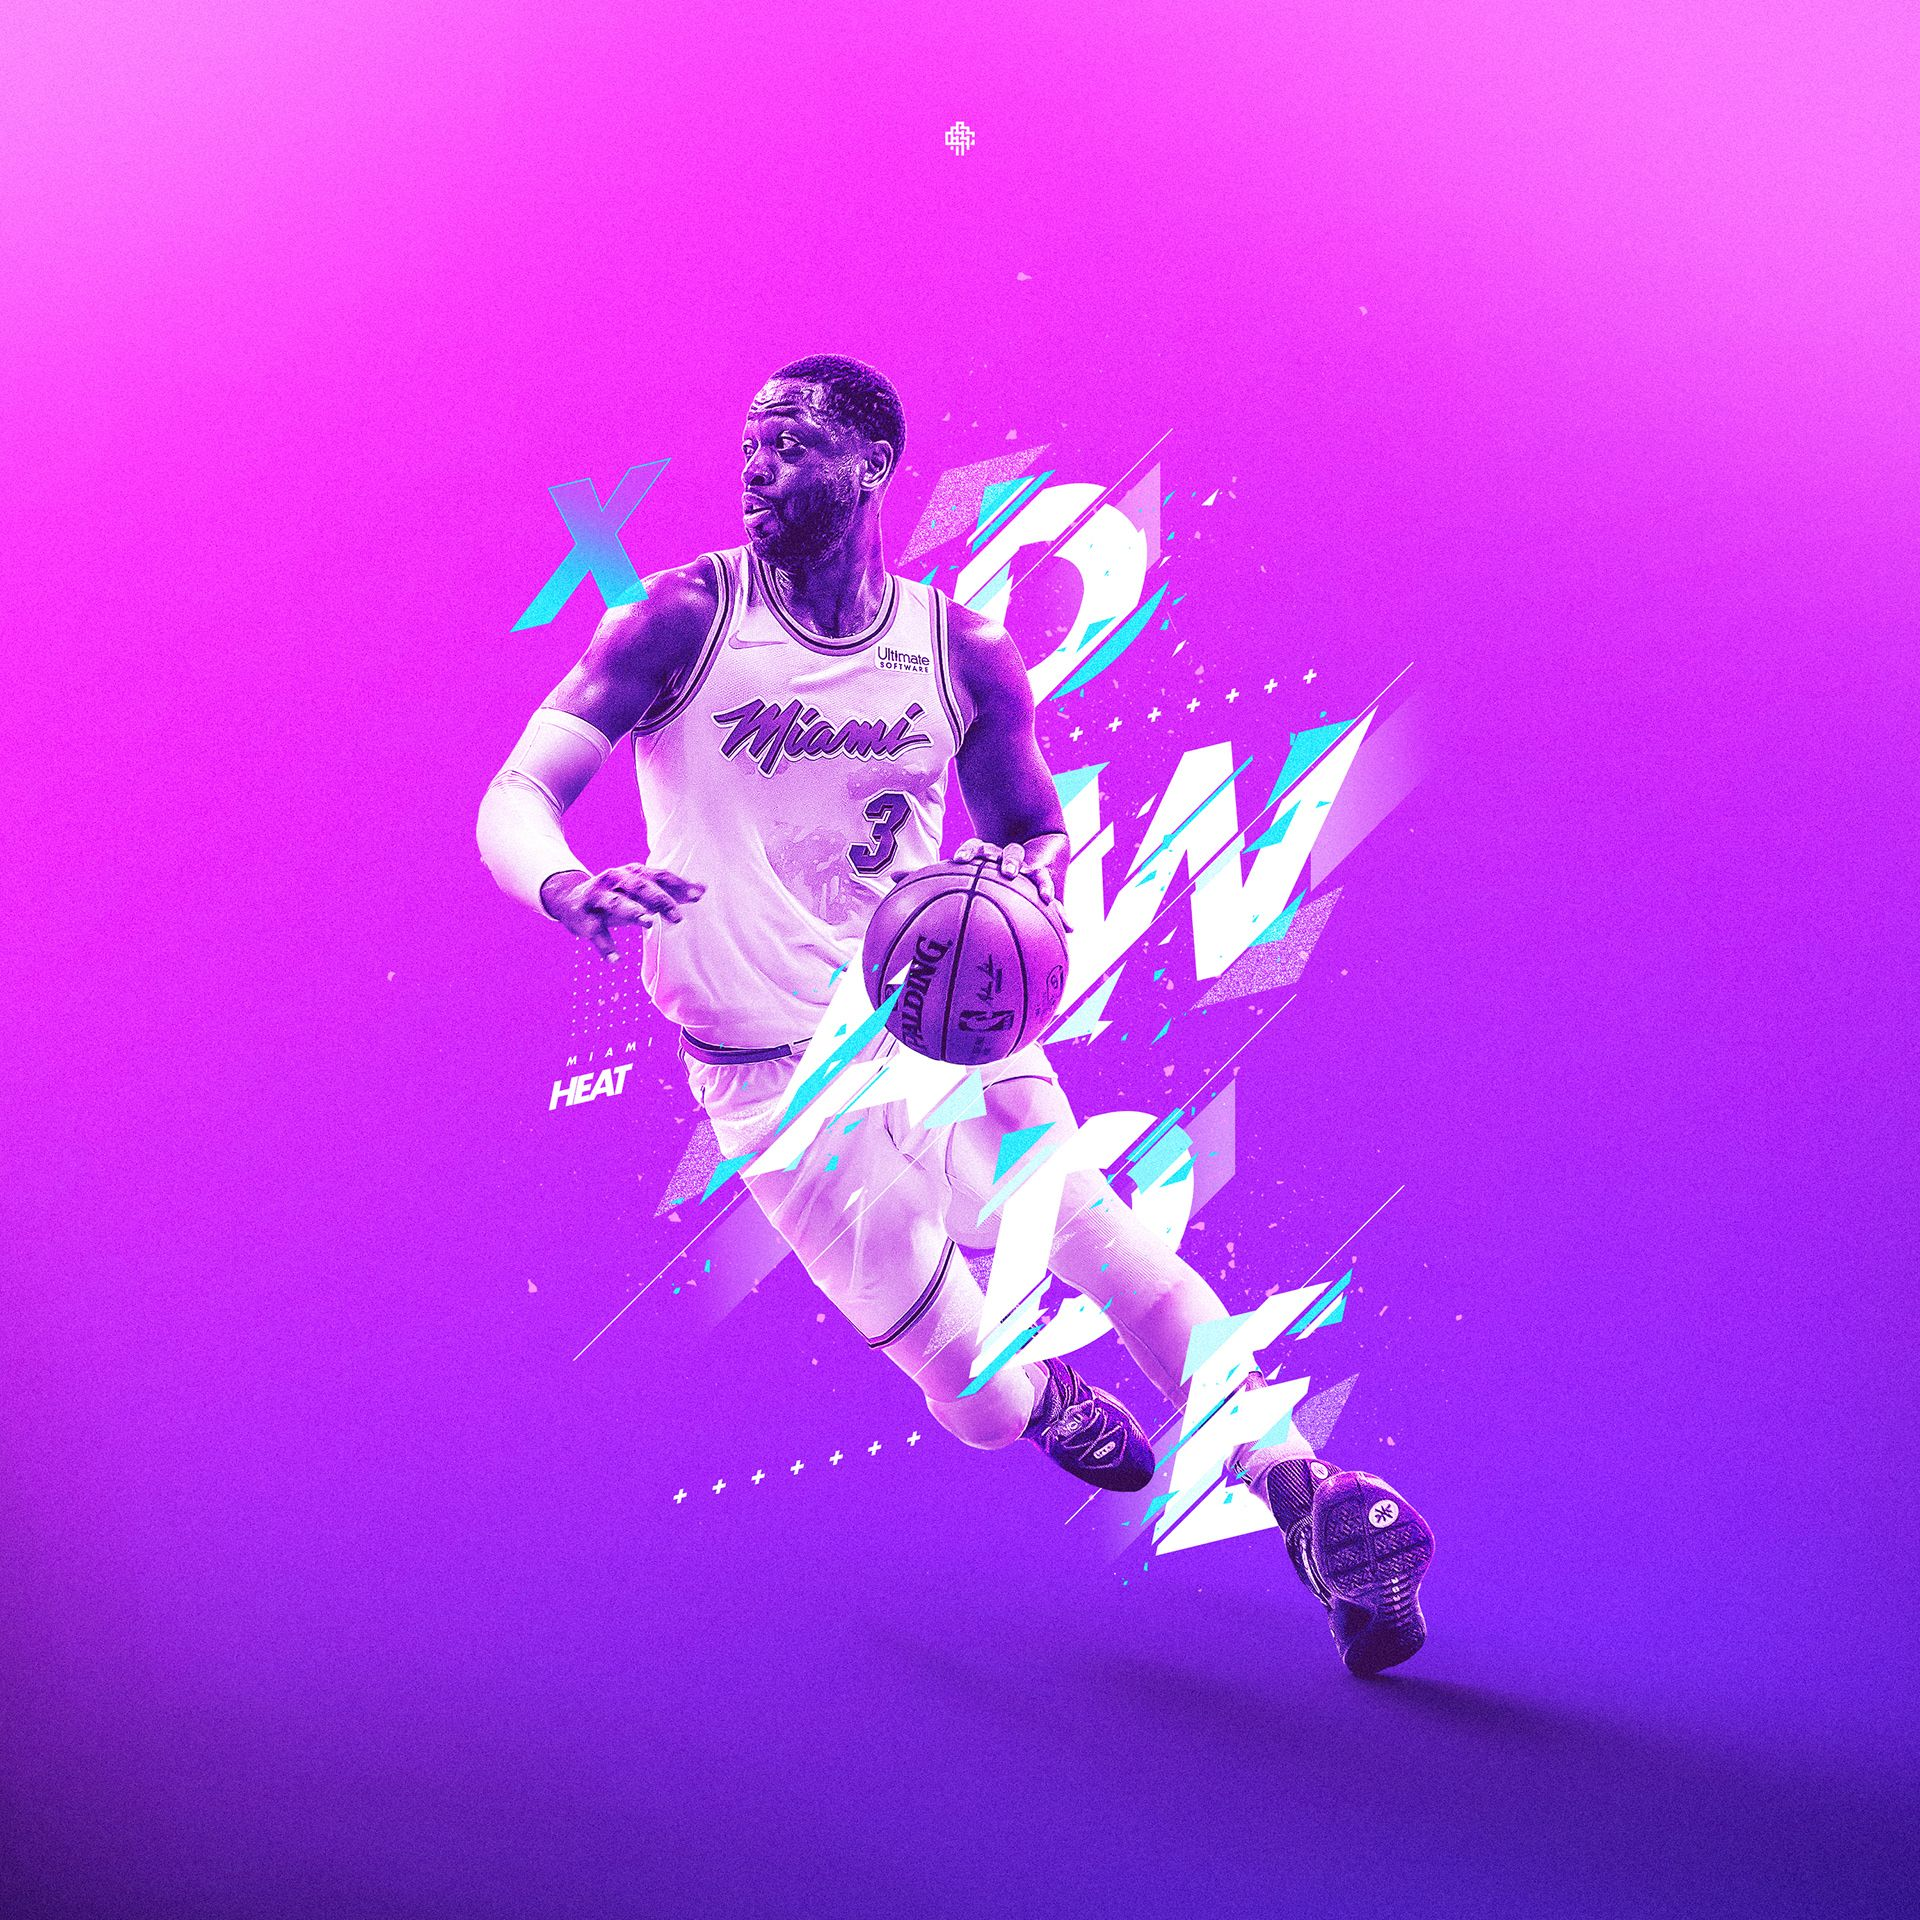 Dwyane Wade Retro On Behance Nba Wallpapers Dwyane Wade Sports Graphic Design